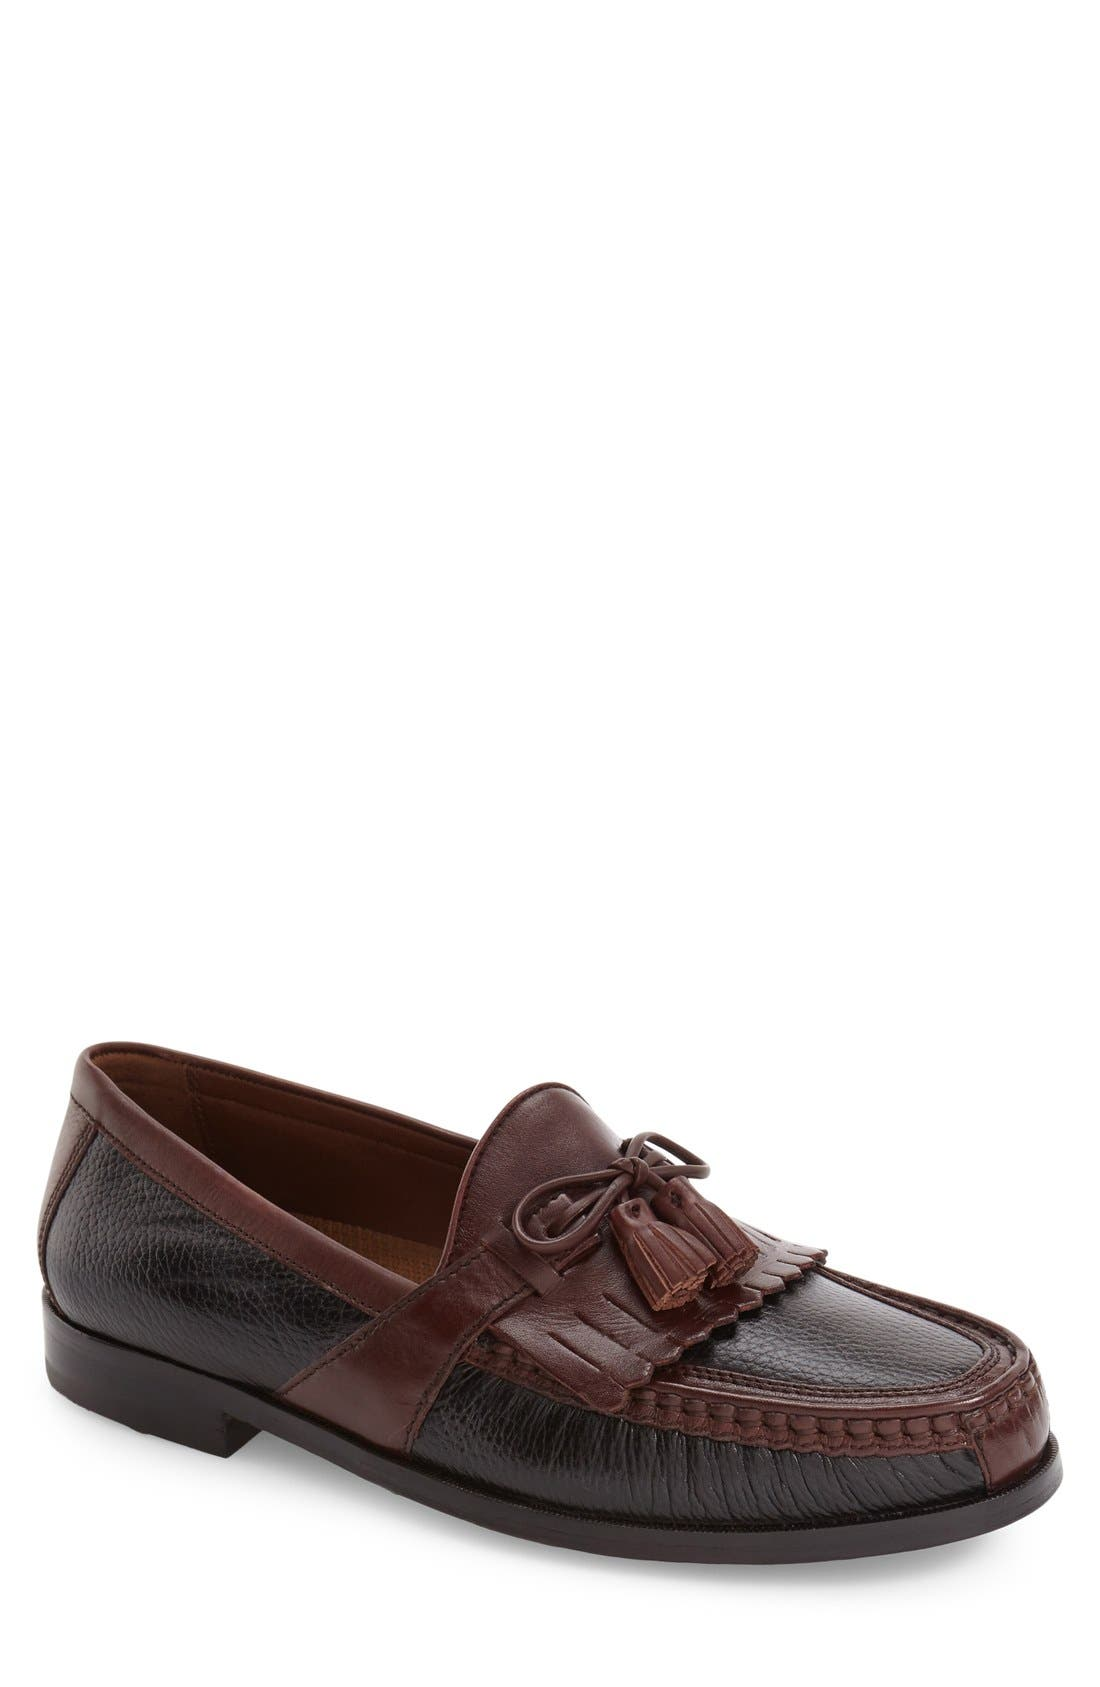 Johnston & Murphy 'Aragon II' Loafer